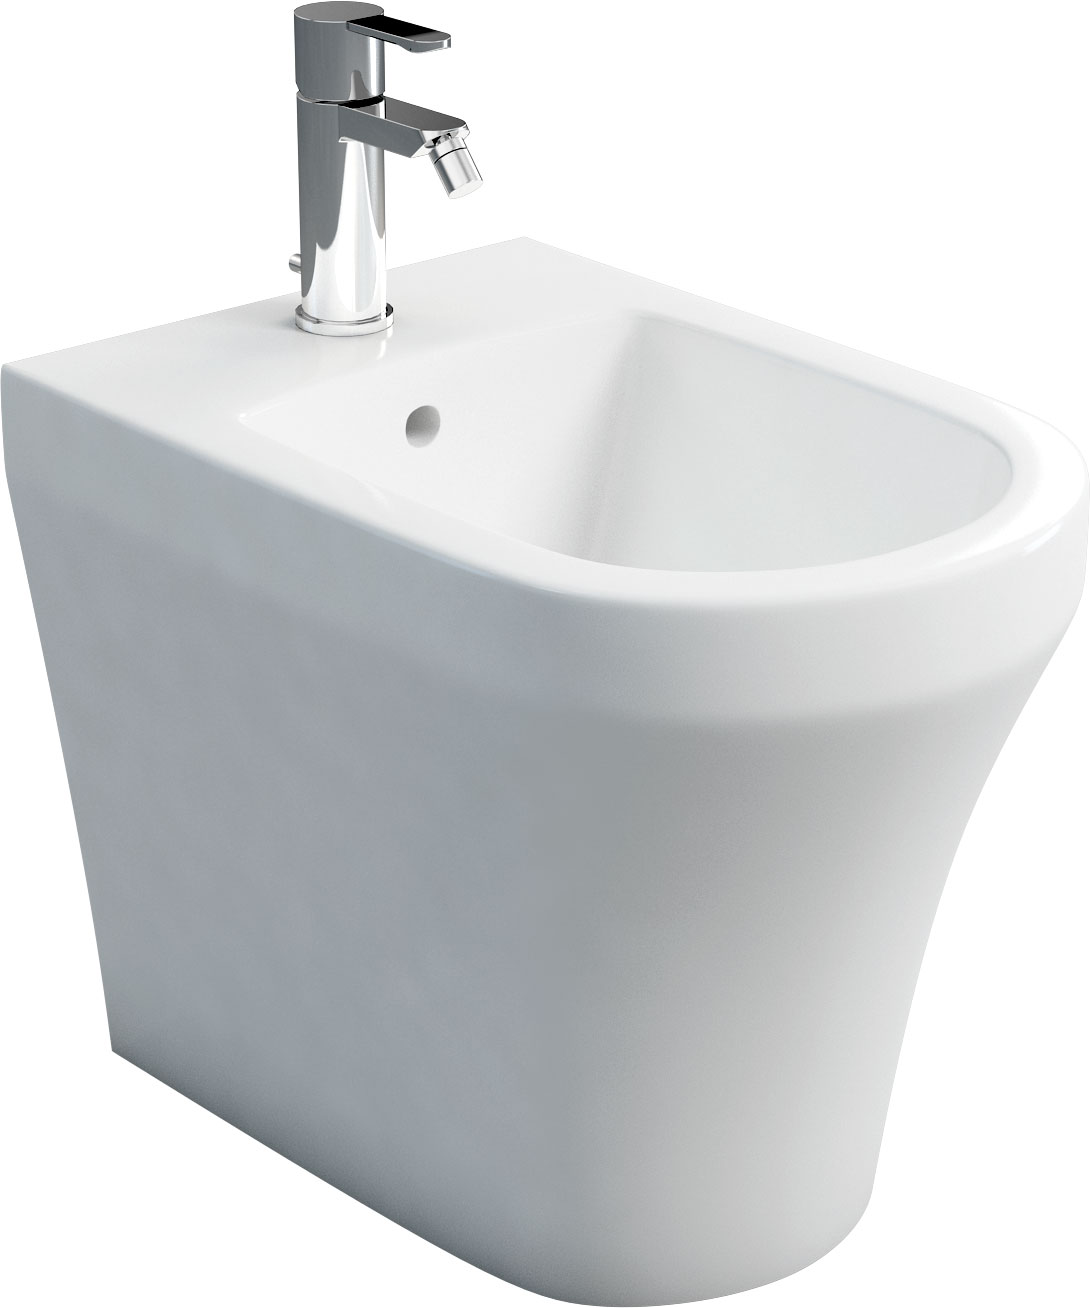 click on Back to Wall Bidet image to enlarge